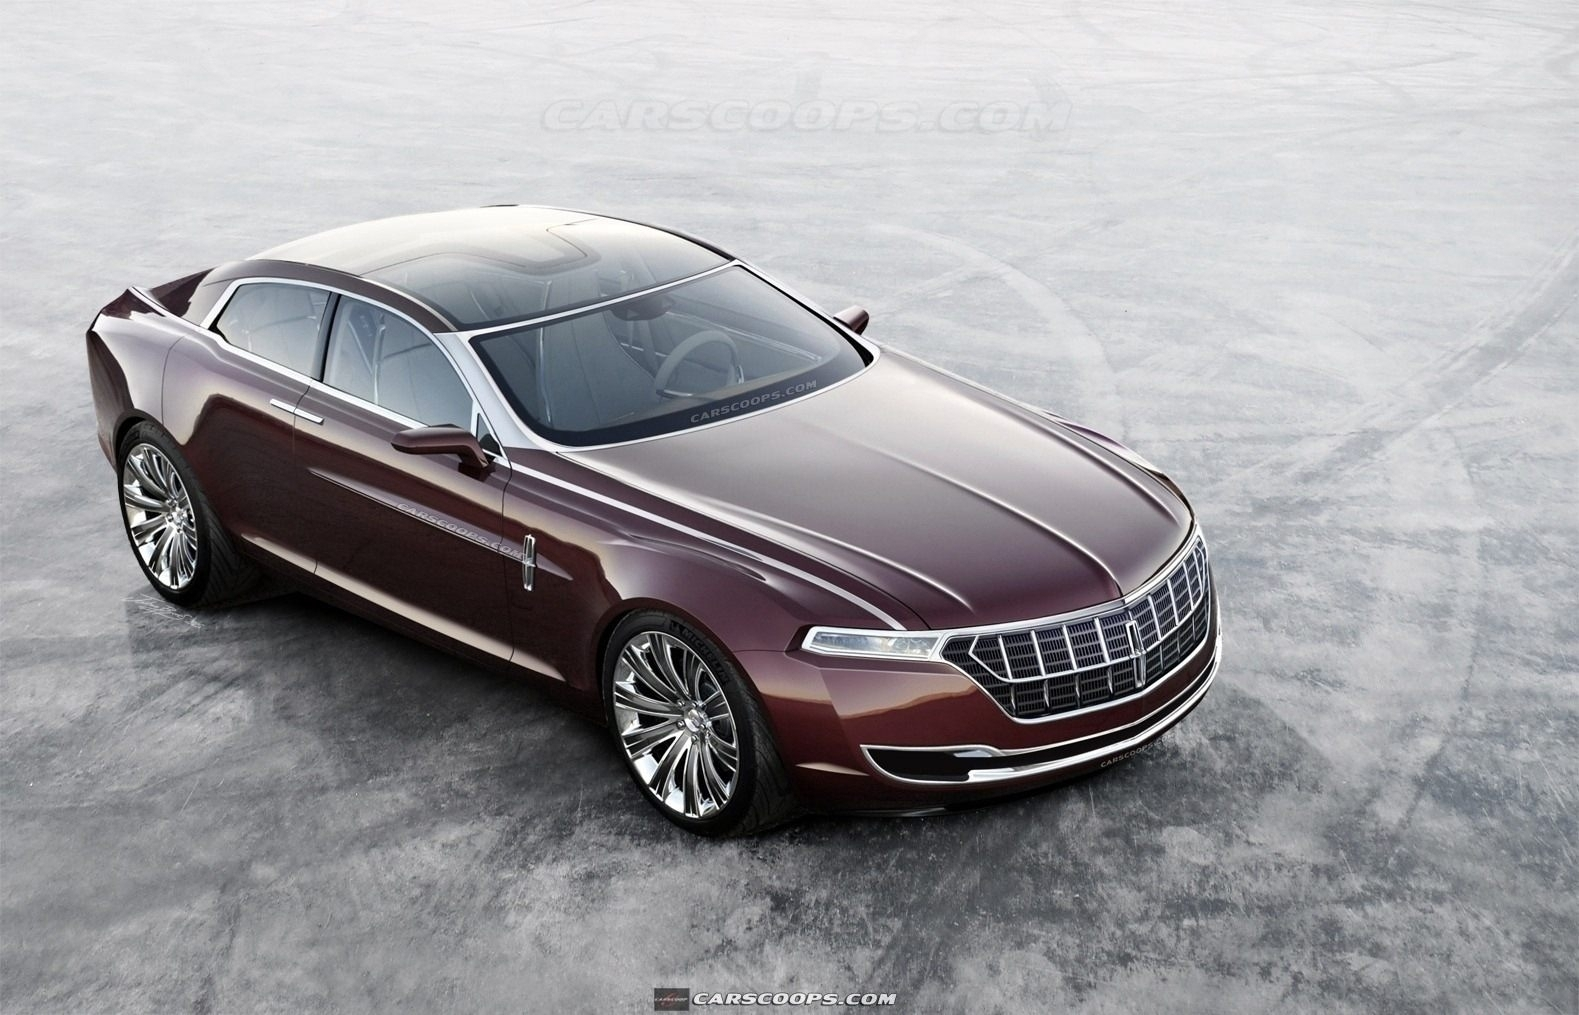 79 New Spy Shots Lincoln Mkz Sedan Model